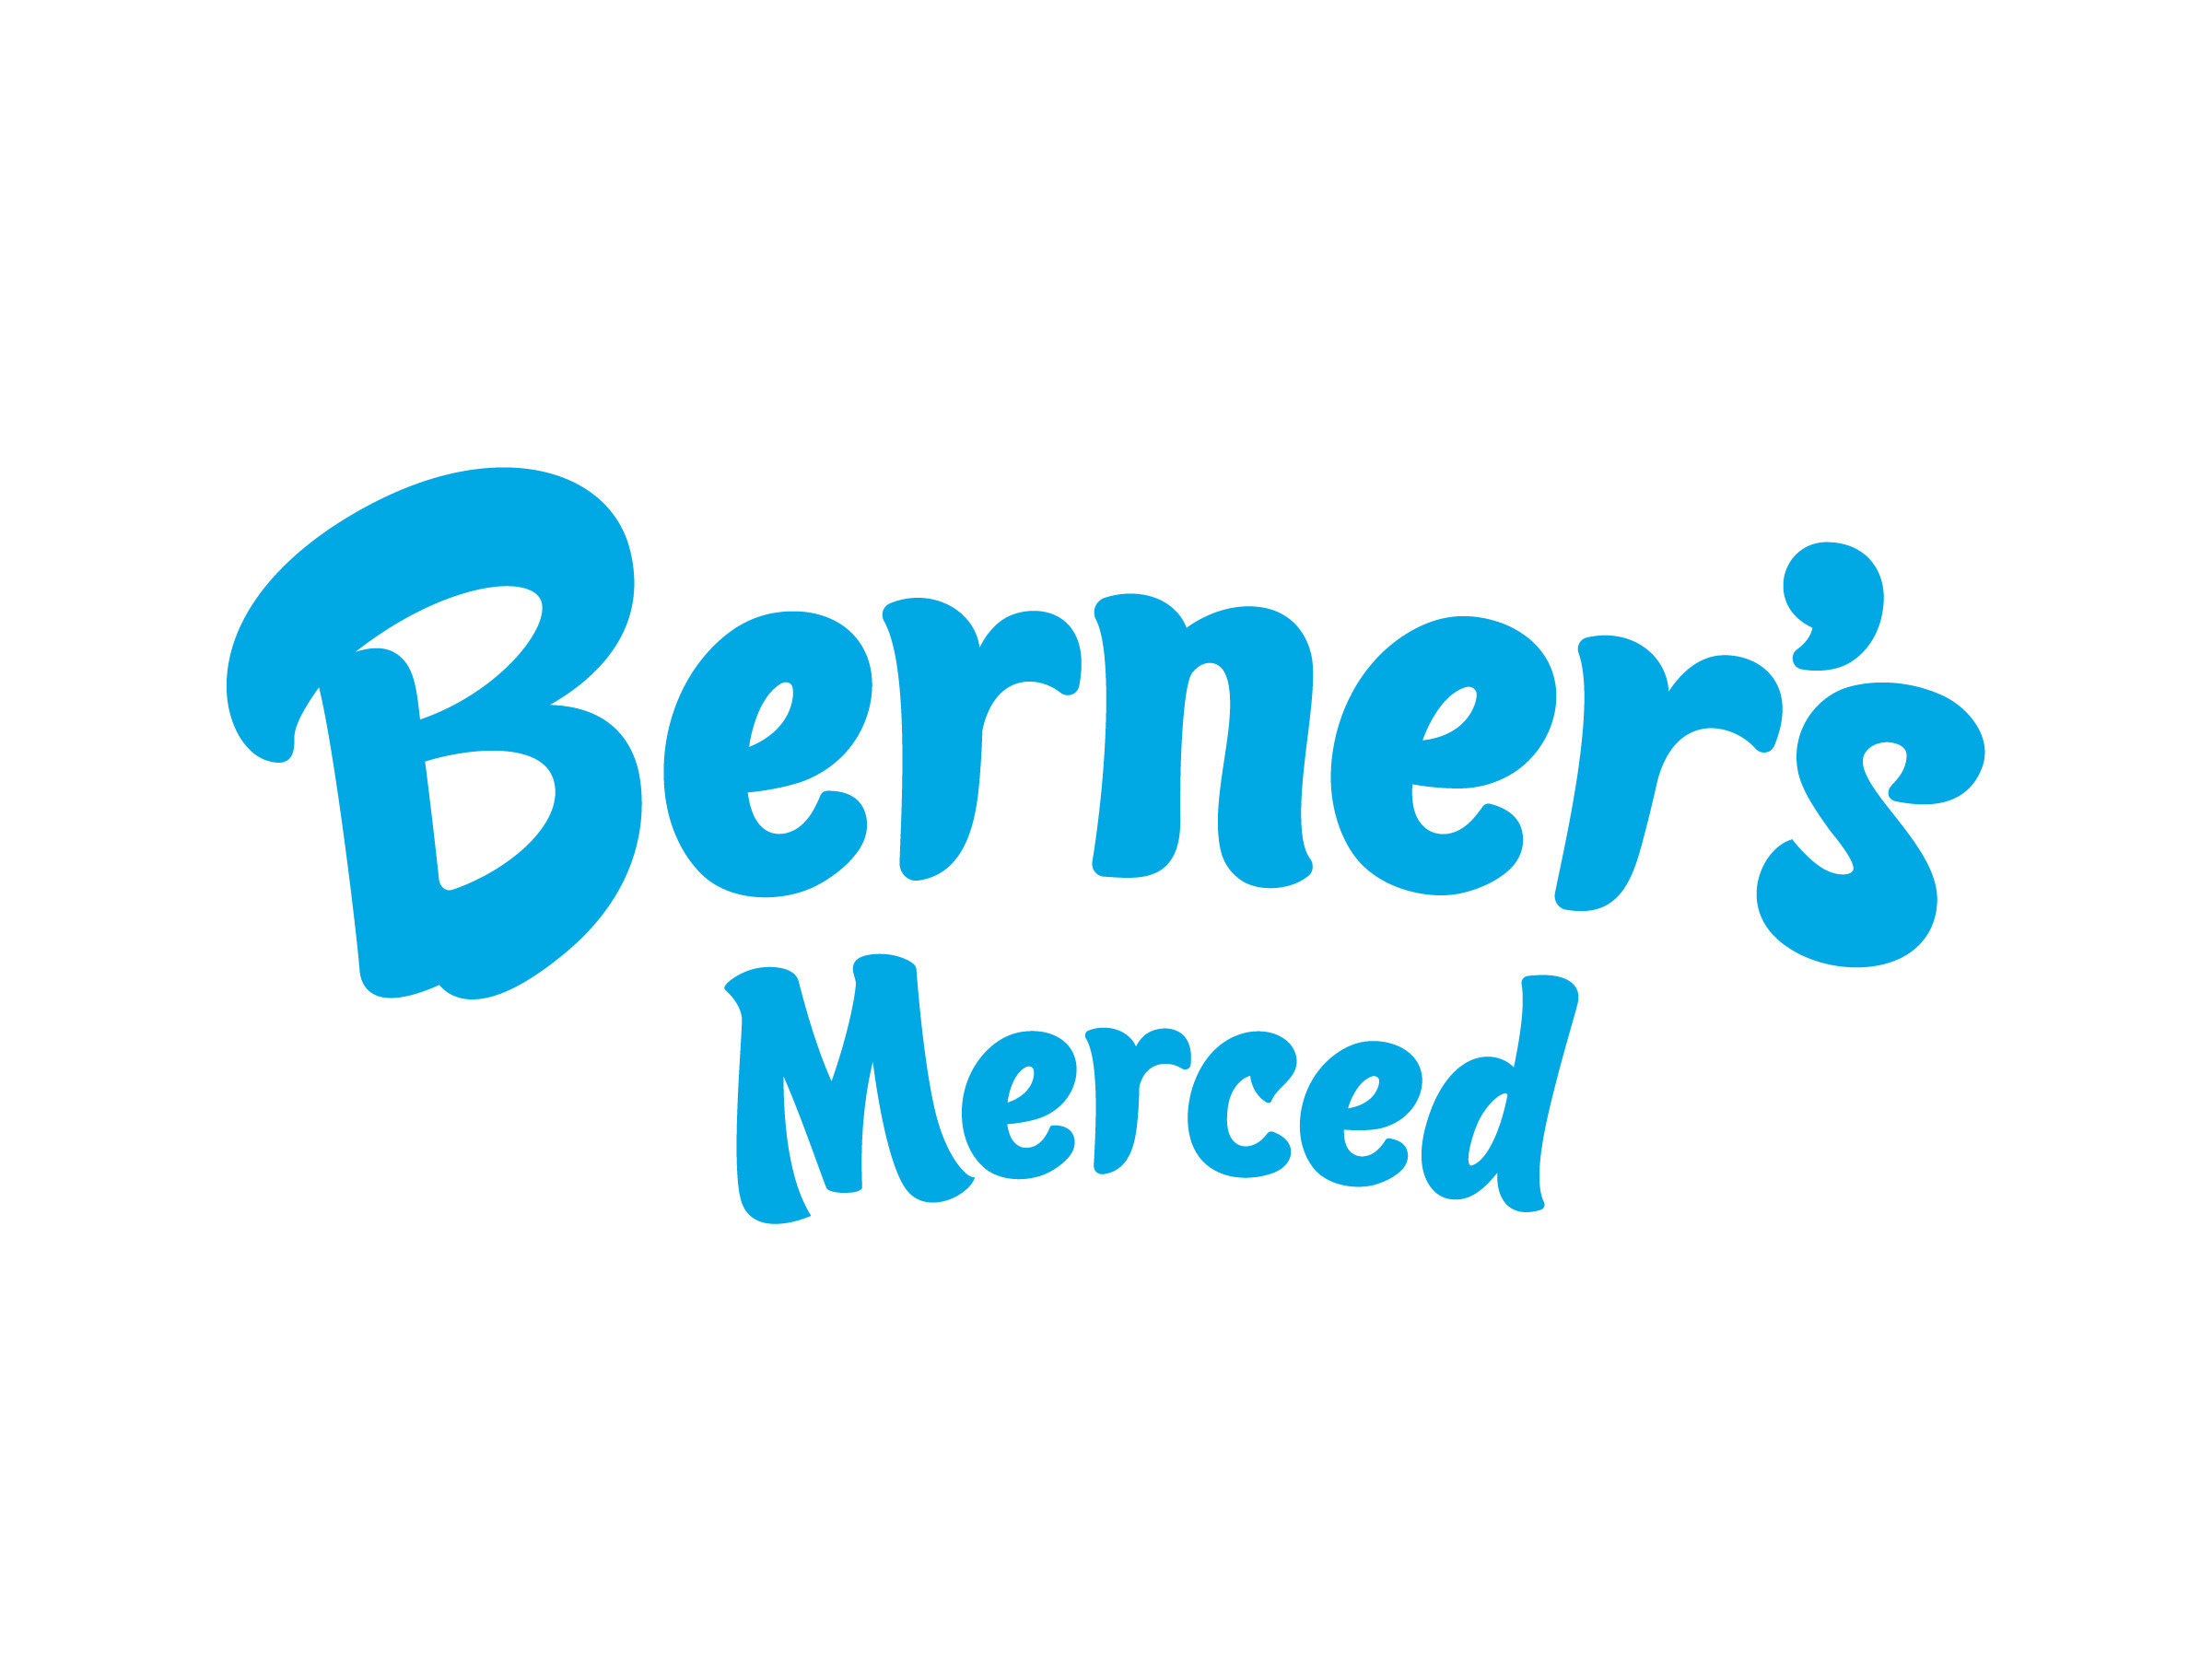 global cannabis culture leader cookies opens berner s merced increasing access to their world famous genetics global cannabis culture leader cookies opens berner s merced increasing access to their world famous genetics